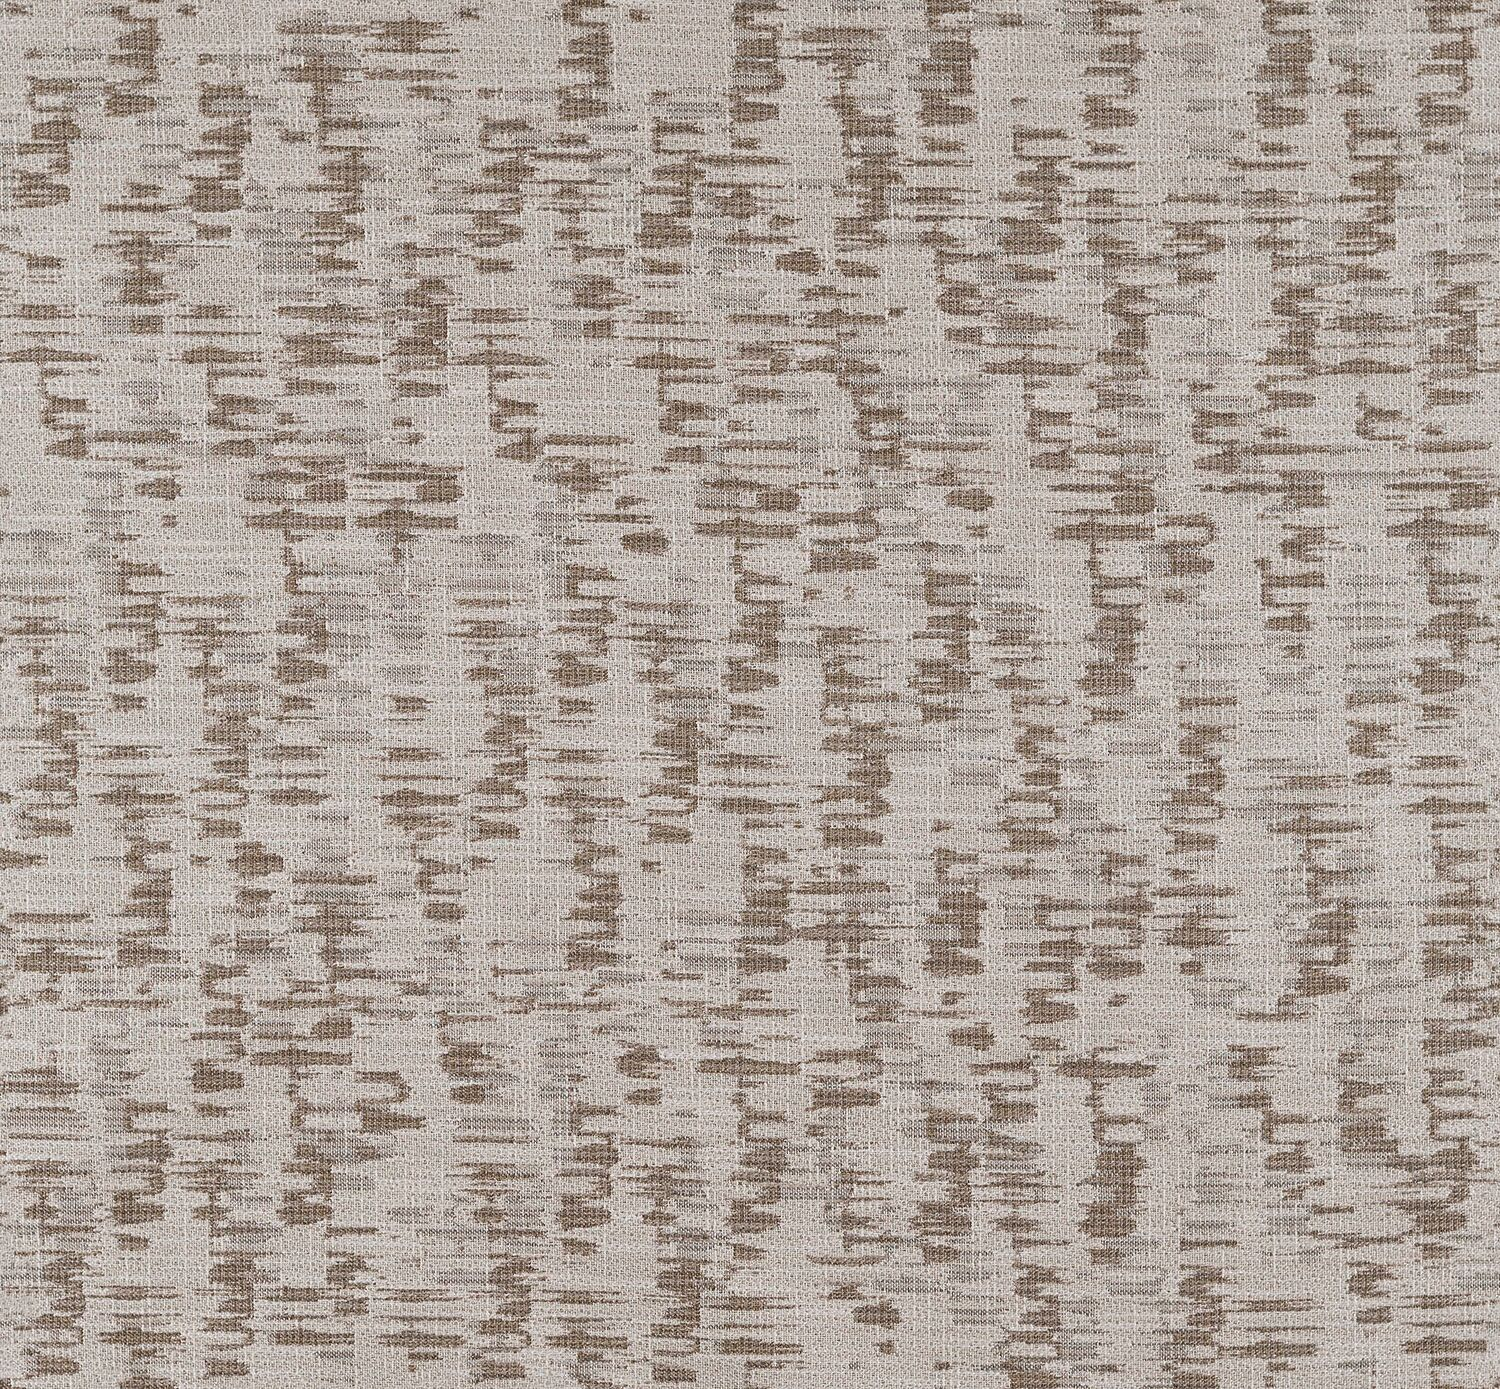 Wavefield - Tideline - 4091 - 01 Tileable Swatches